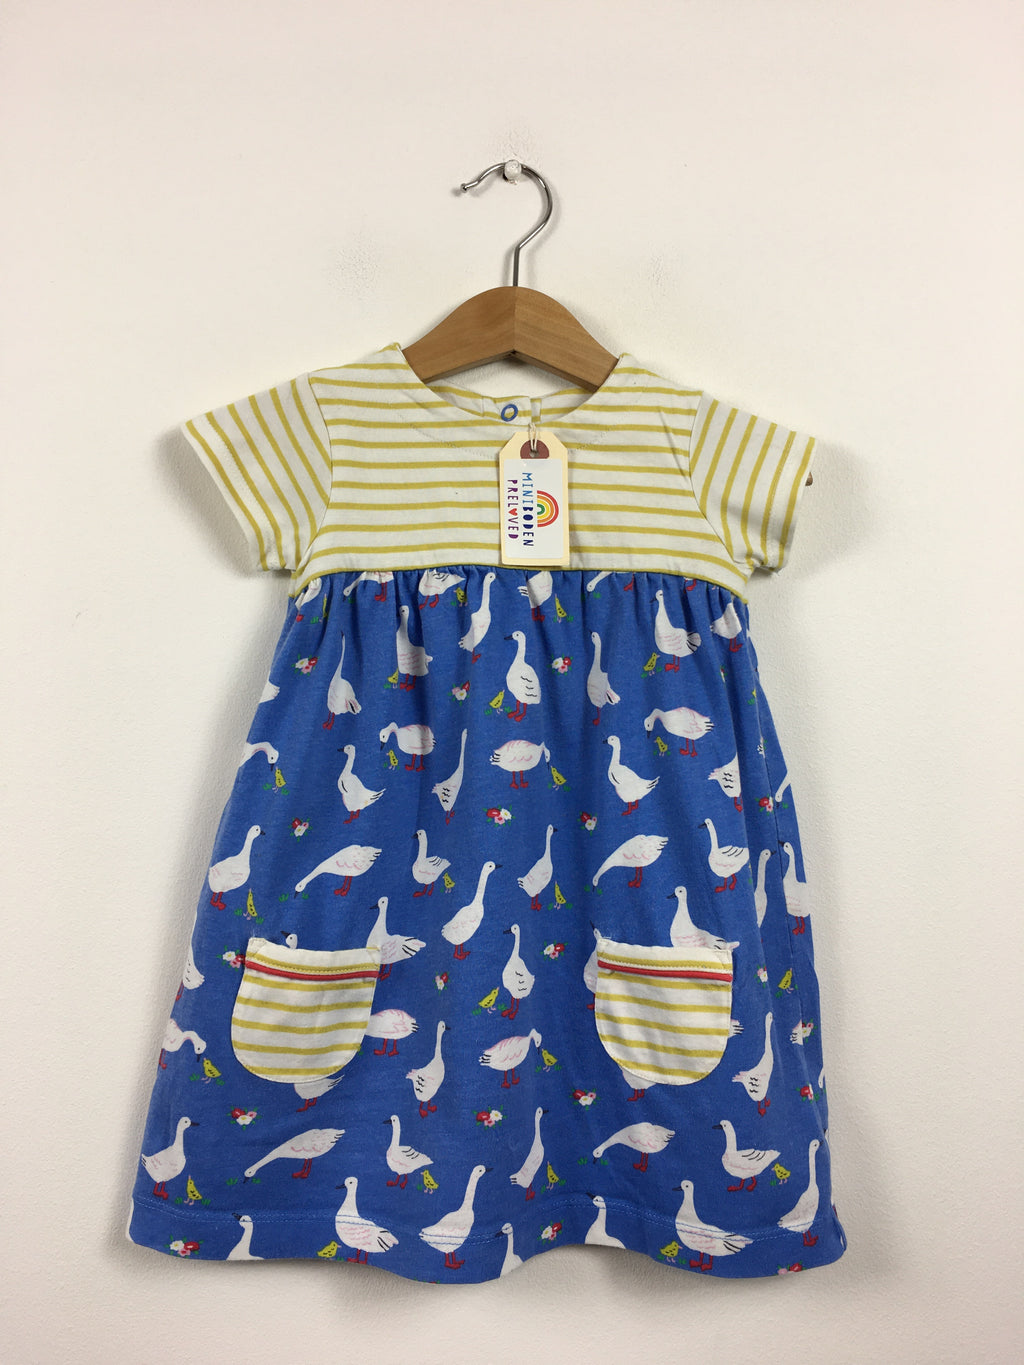 Blue & Yellow Goose Print Hotchpotch Dress (6-12 Months)